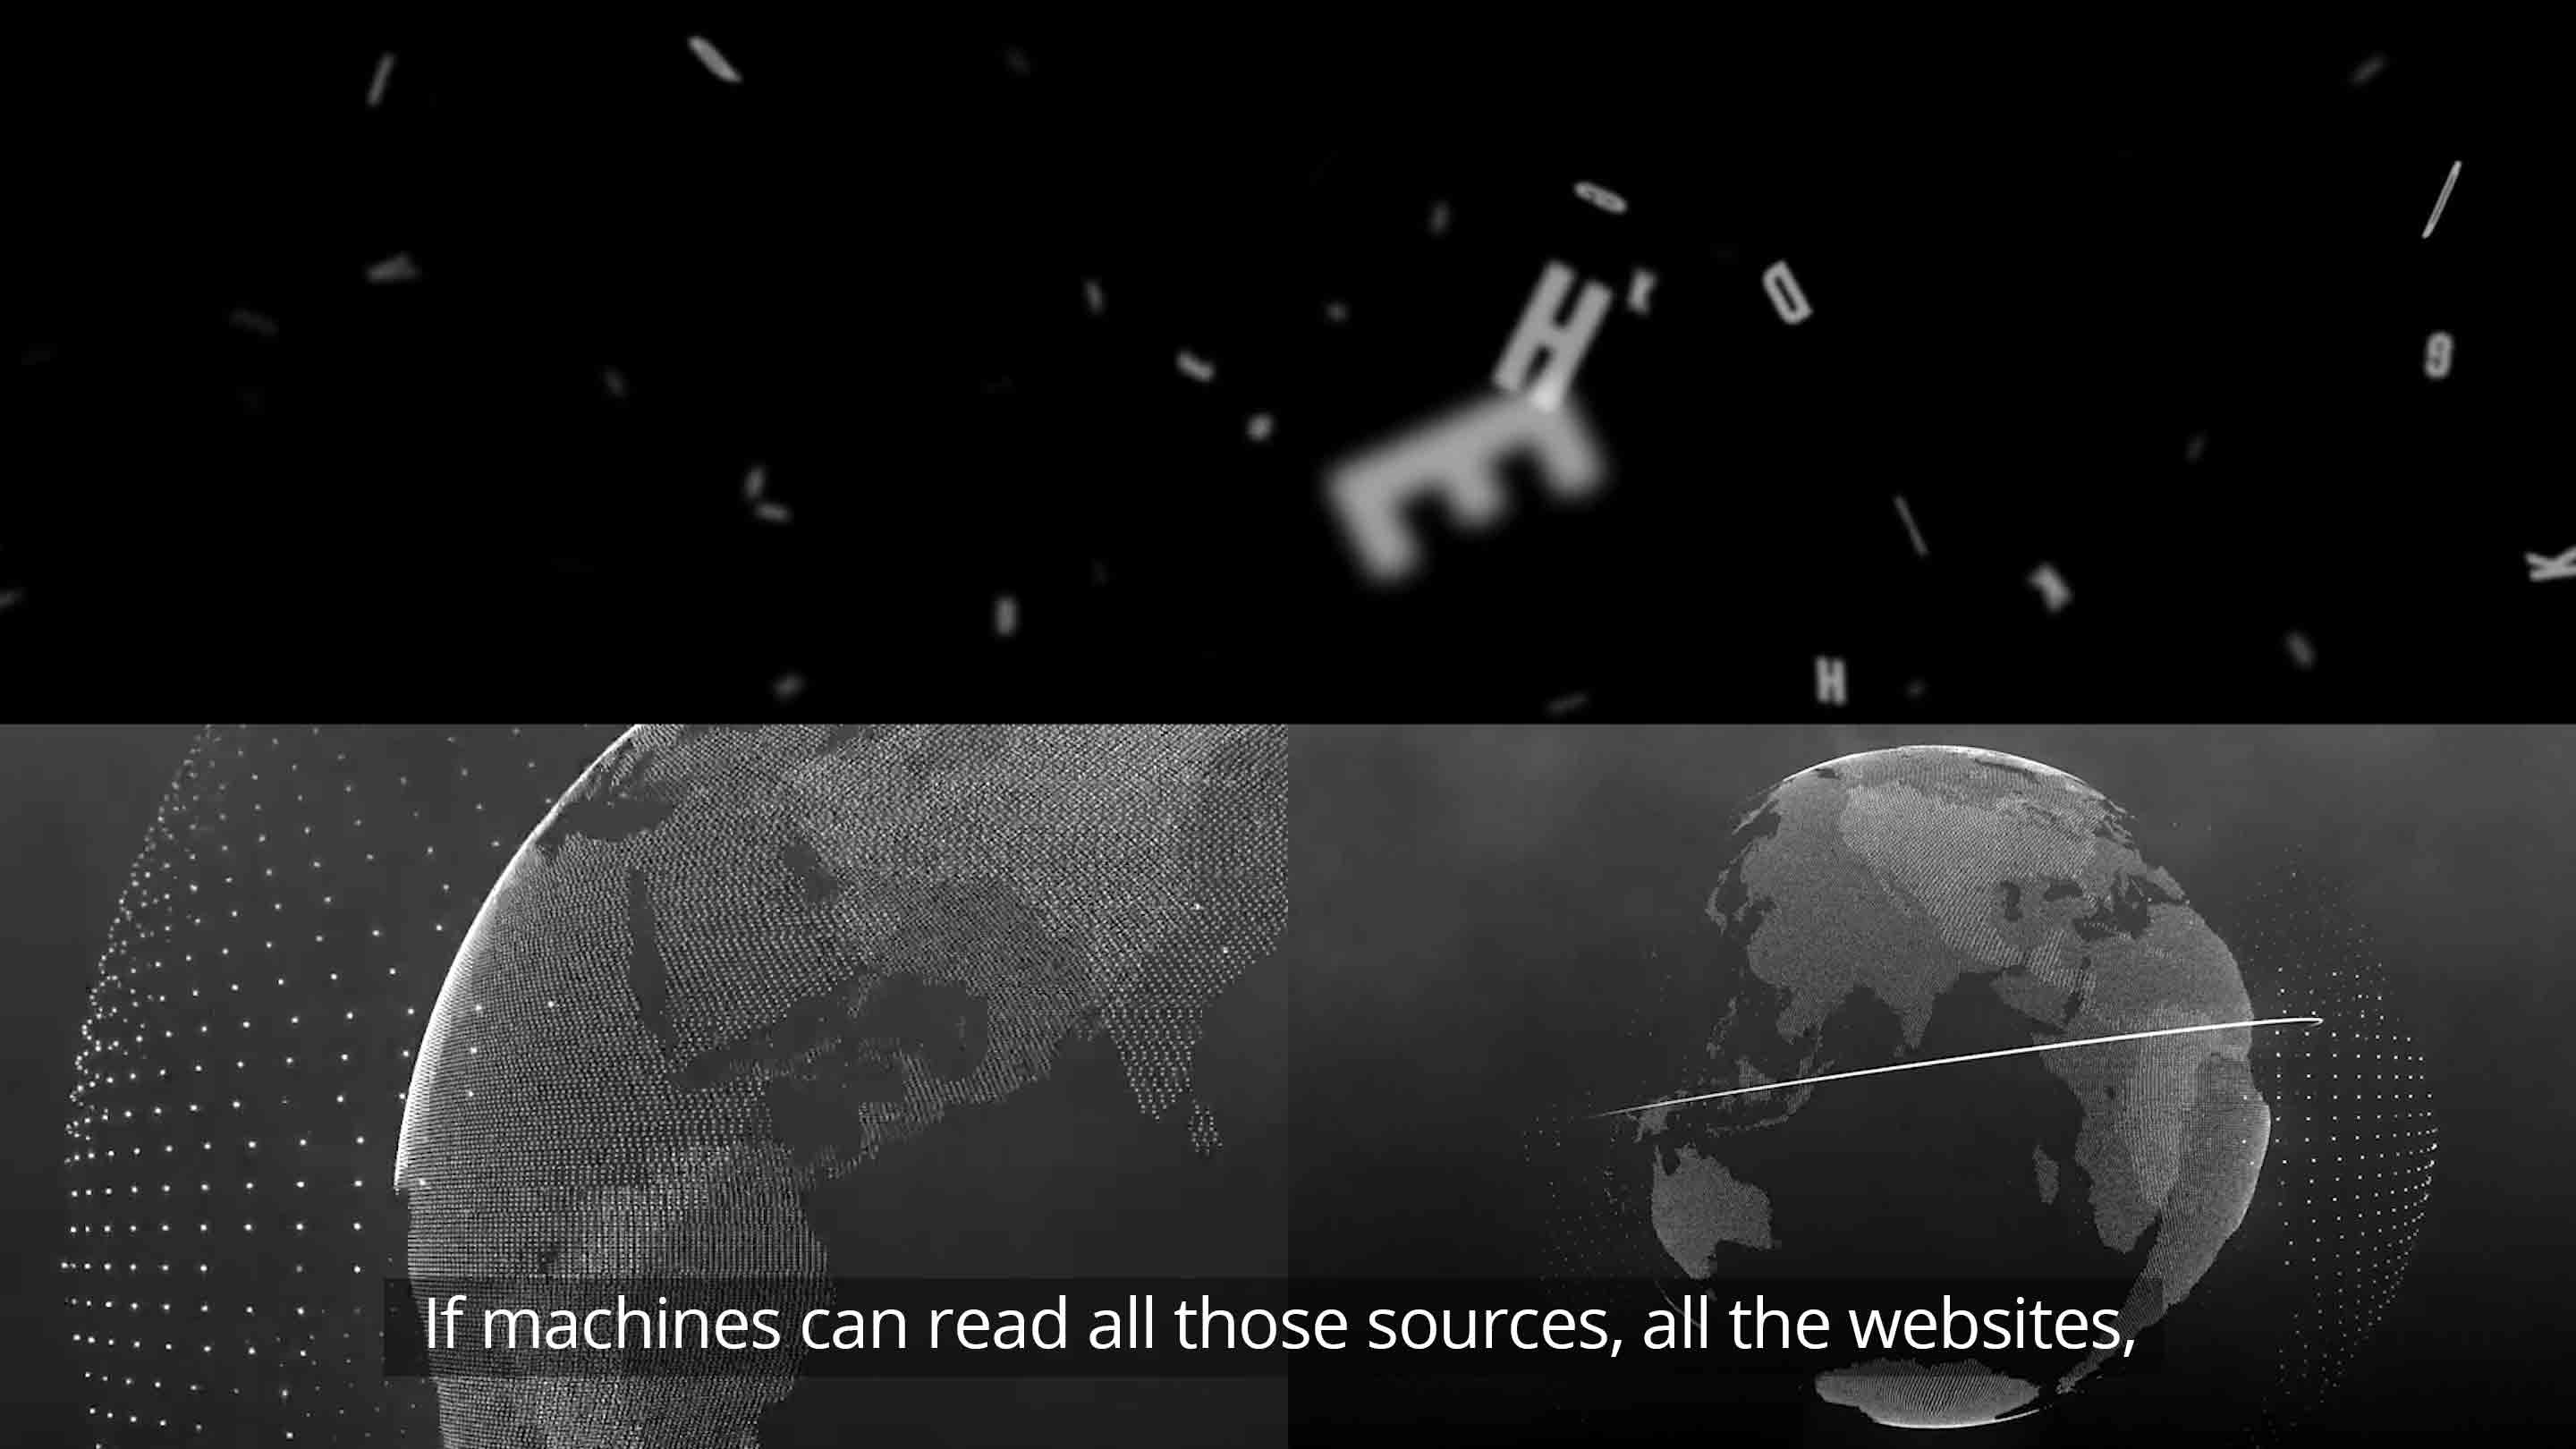 If machines can read all those sources, all the websites